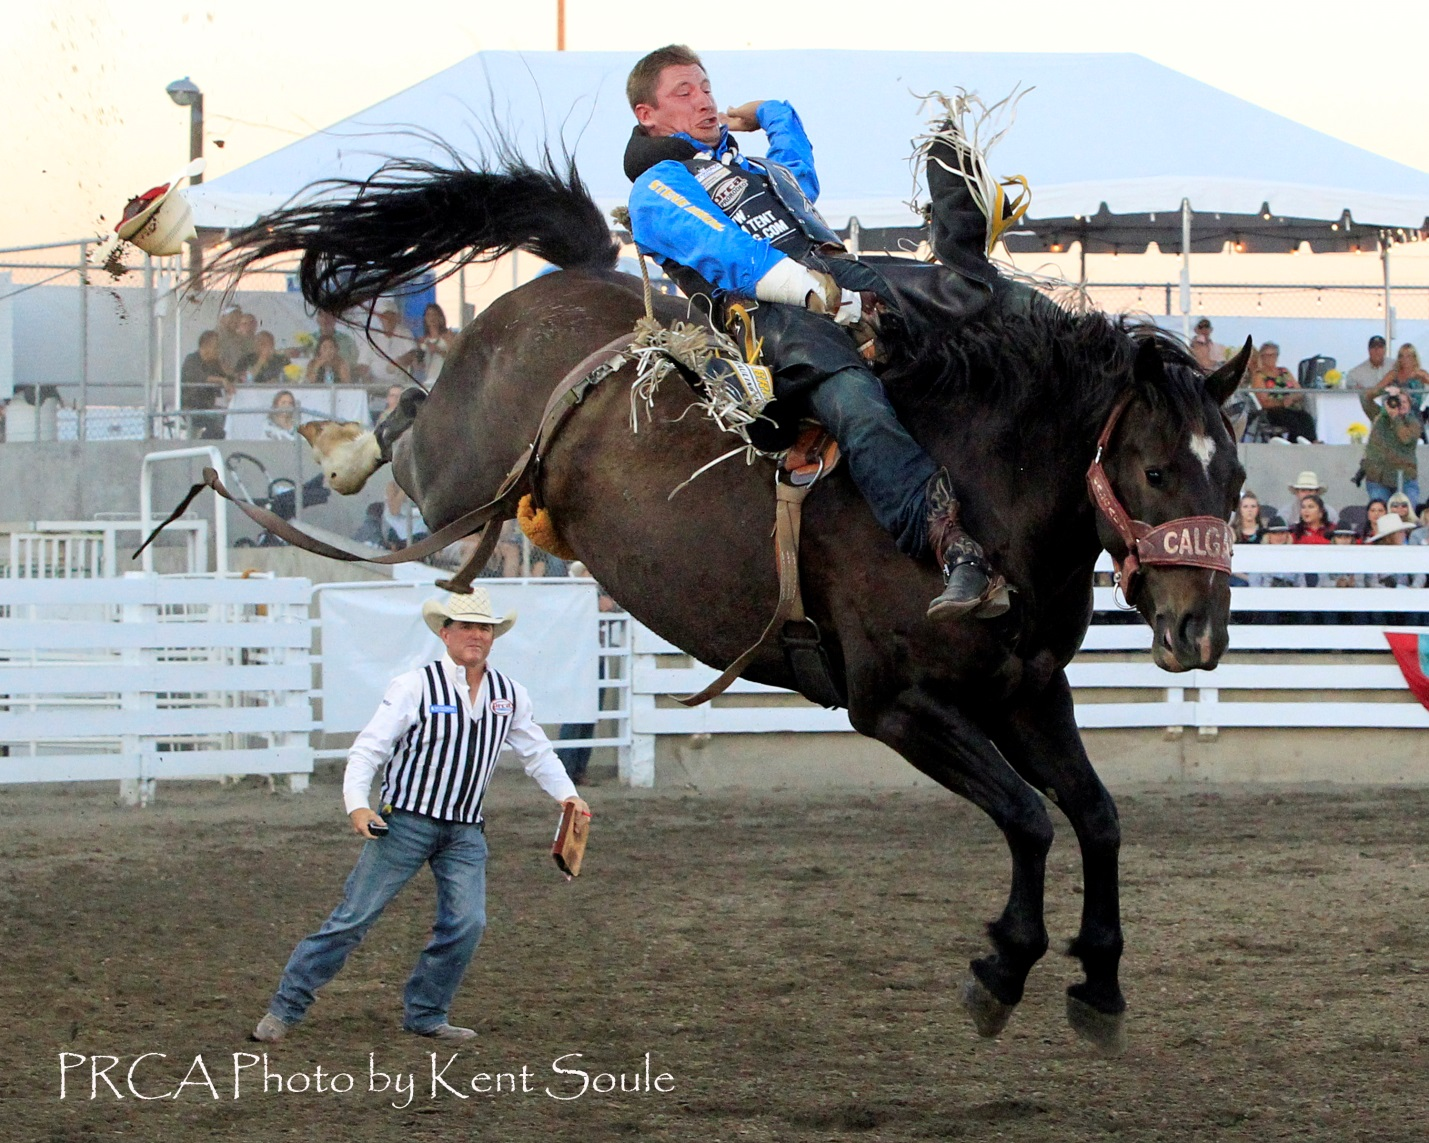 Championship Fall For Stampede Stock Blog